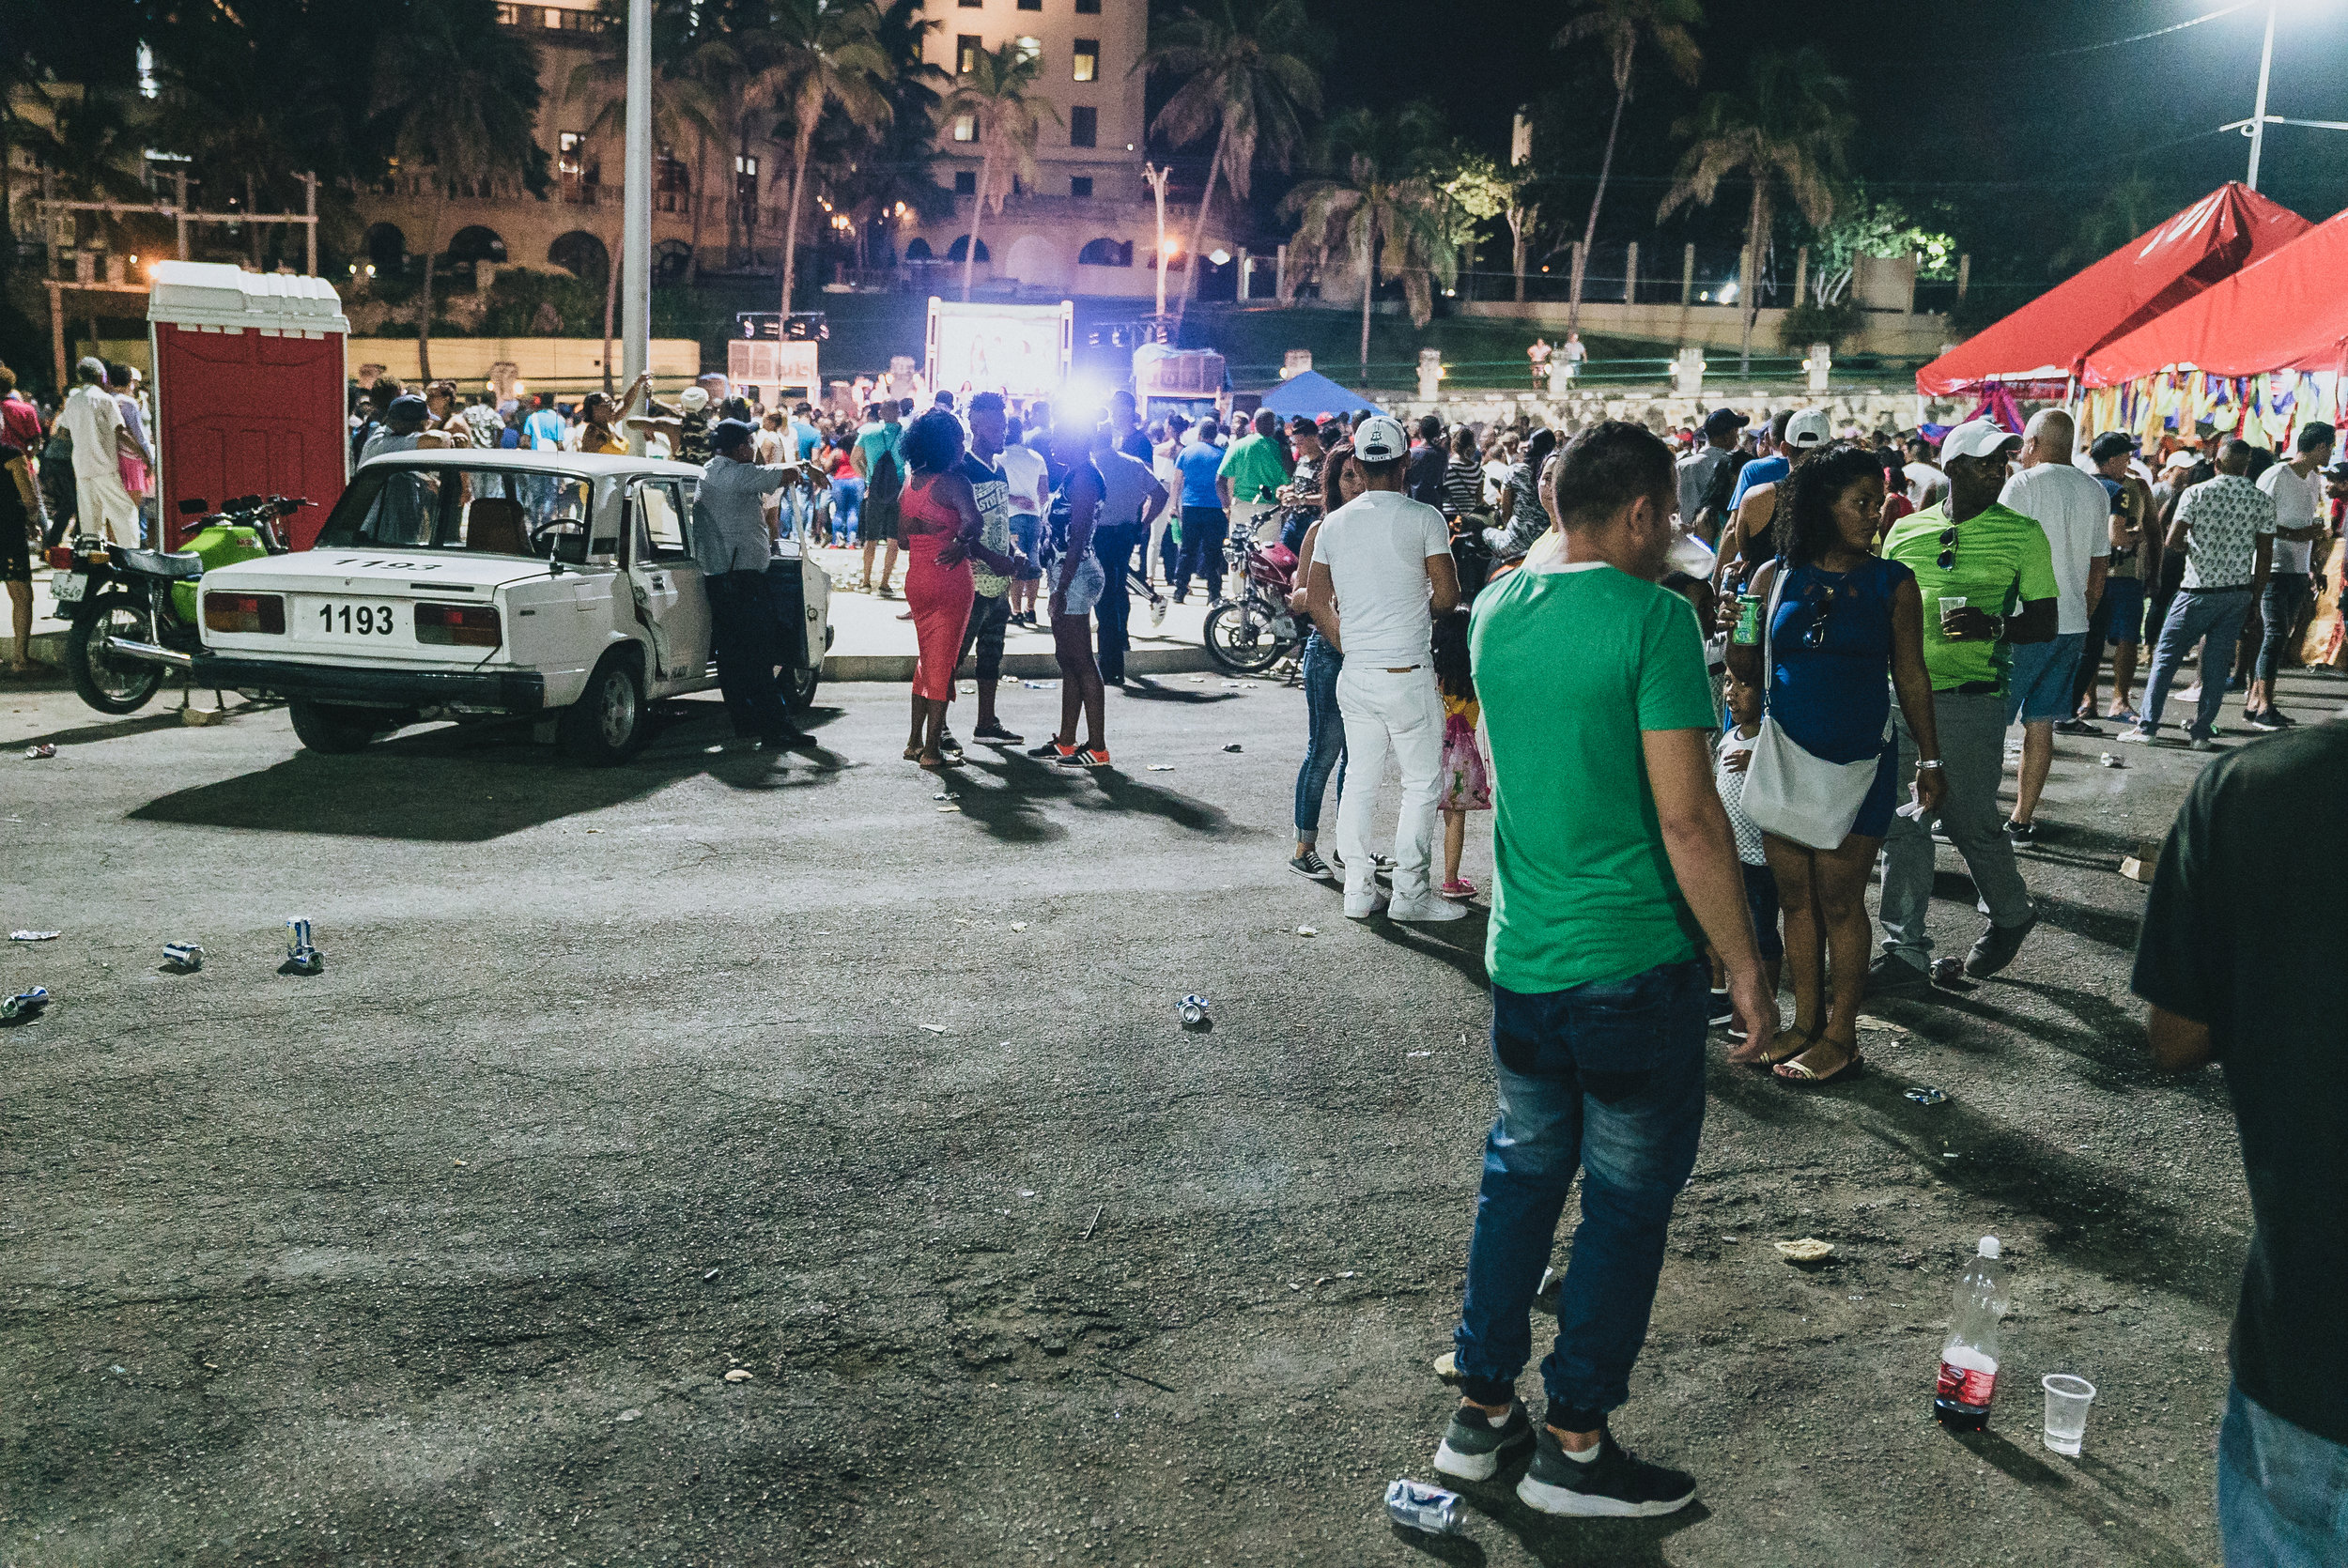 Music is huge in Cuba. This is from an outdoor concert.